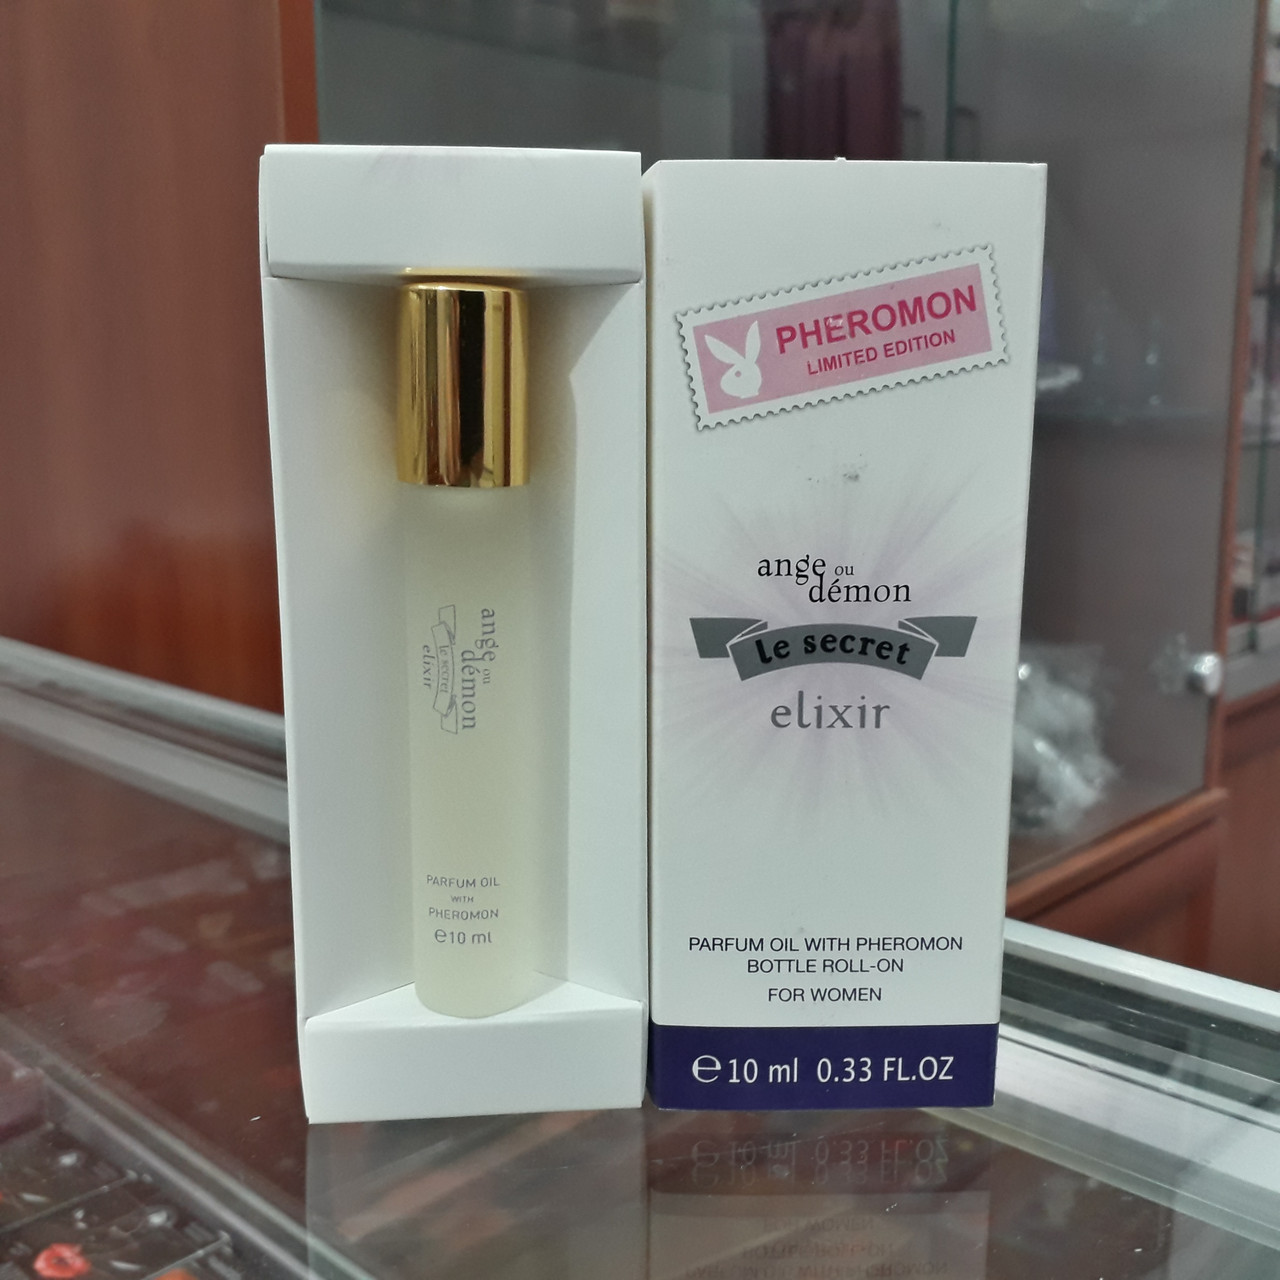 Духи с феромонами Givenchy Ange Ou Demon Le Secret Elixir, 10ml.